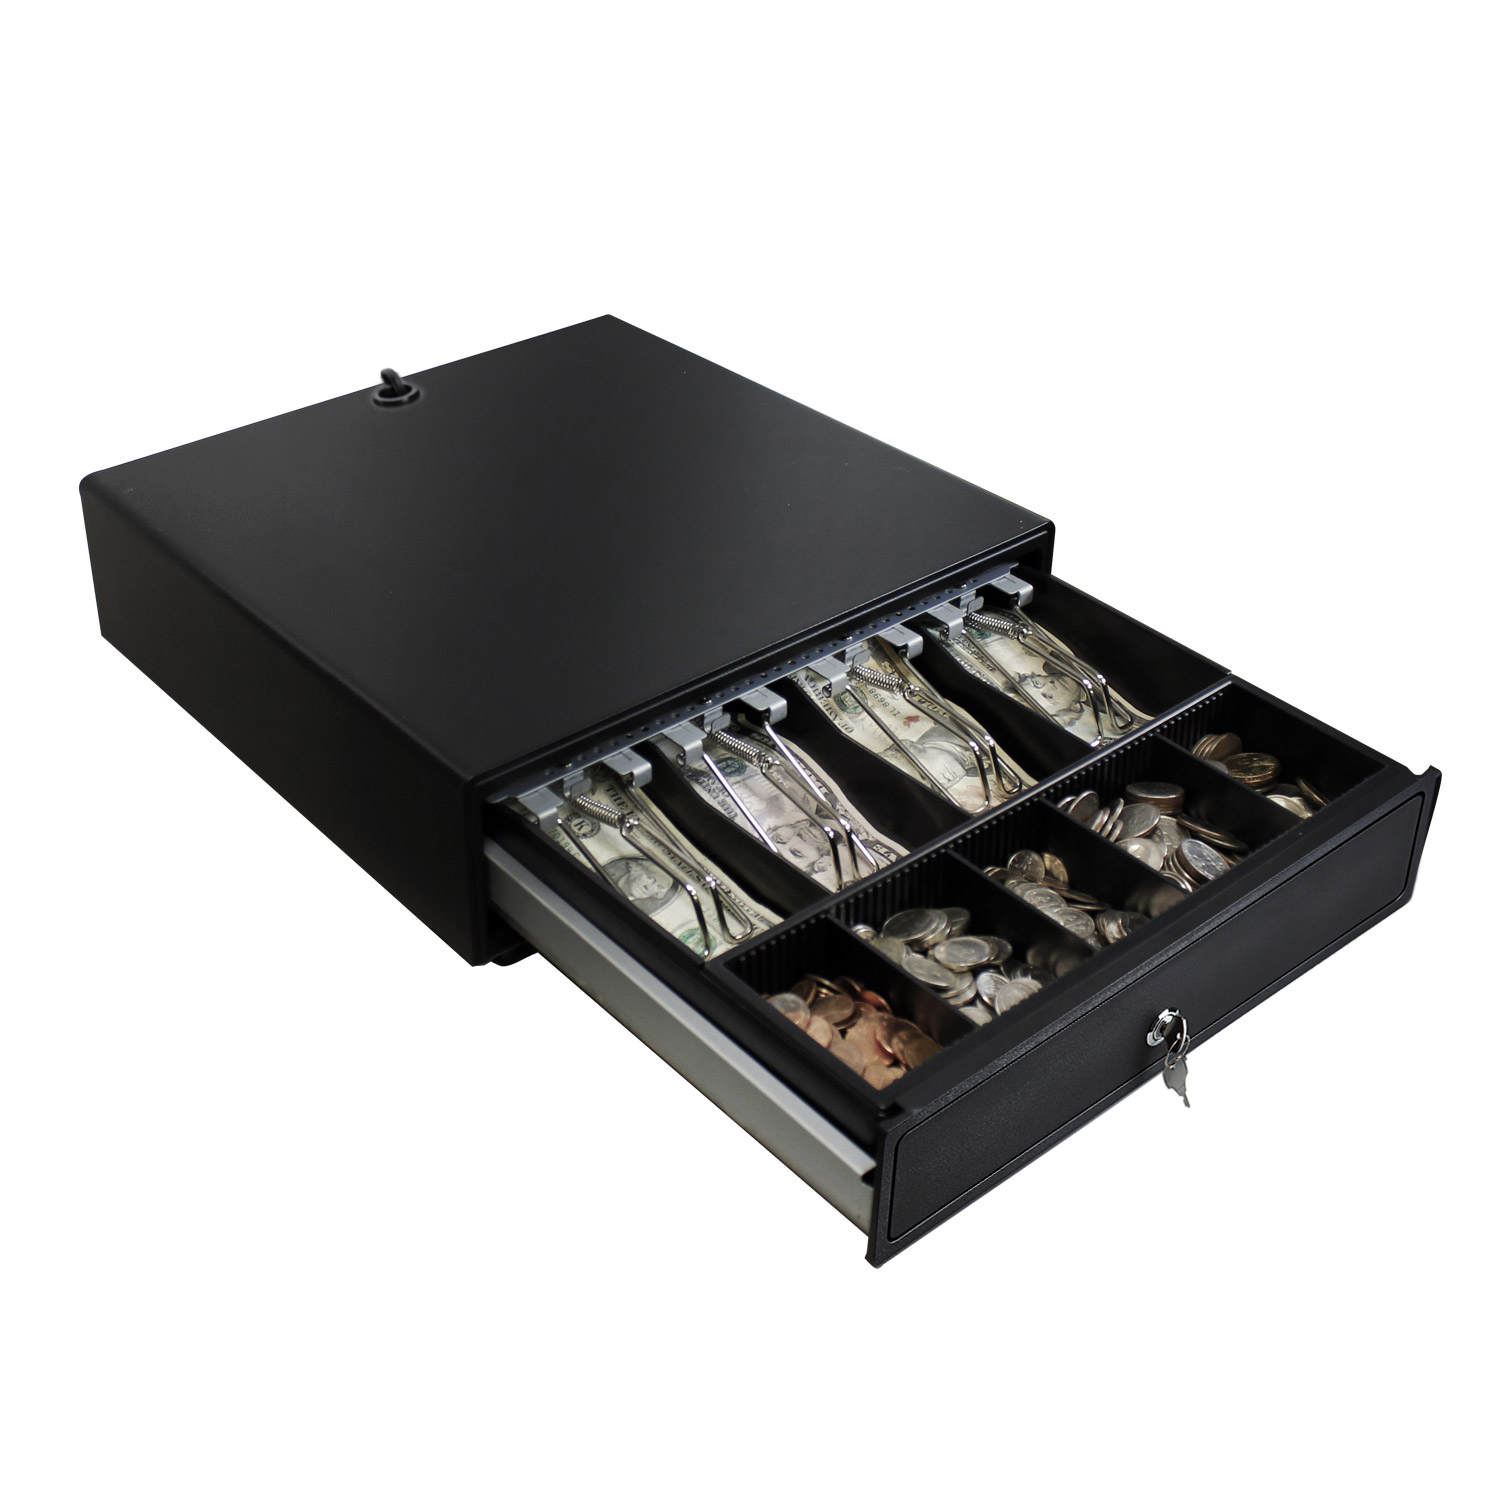 shop bills with money key compass currency coin ce box compartment drawer lock product draw rakuten cash insert removable register